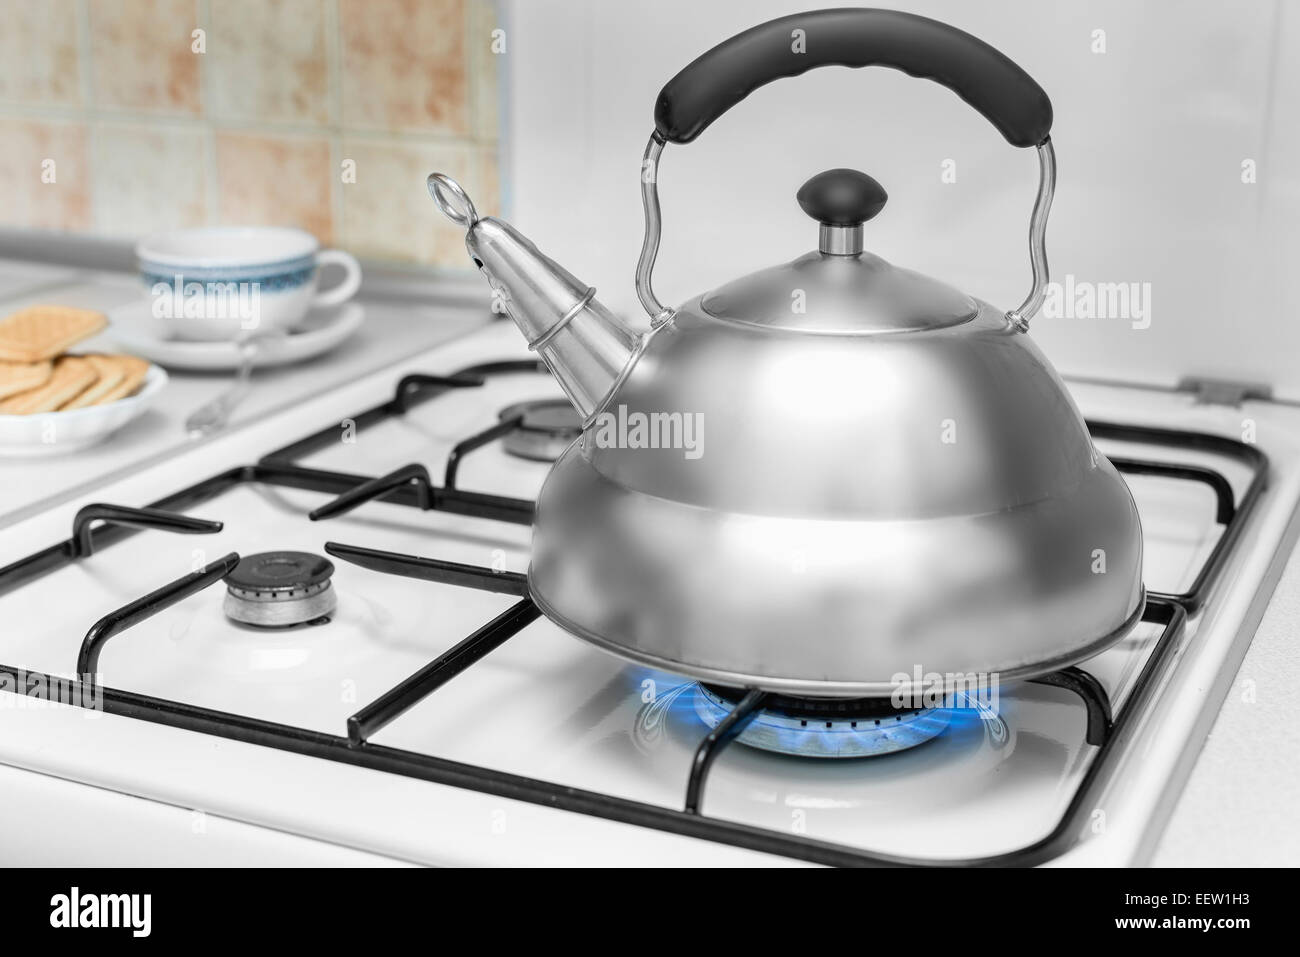 kettle on a gas stove flame burn not boiling - Stock Image